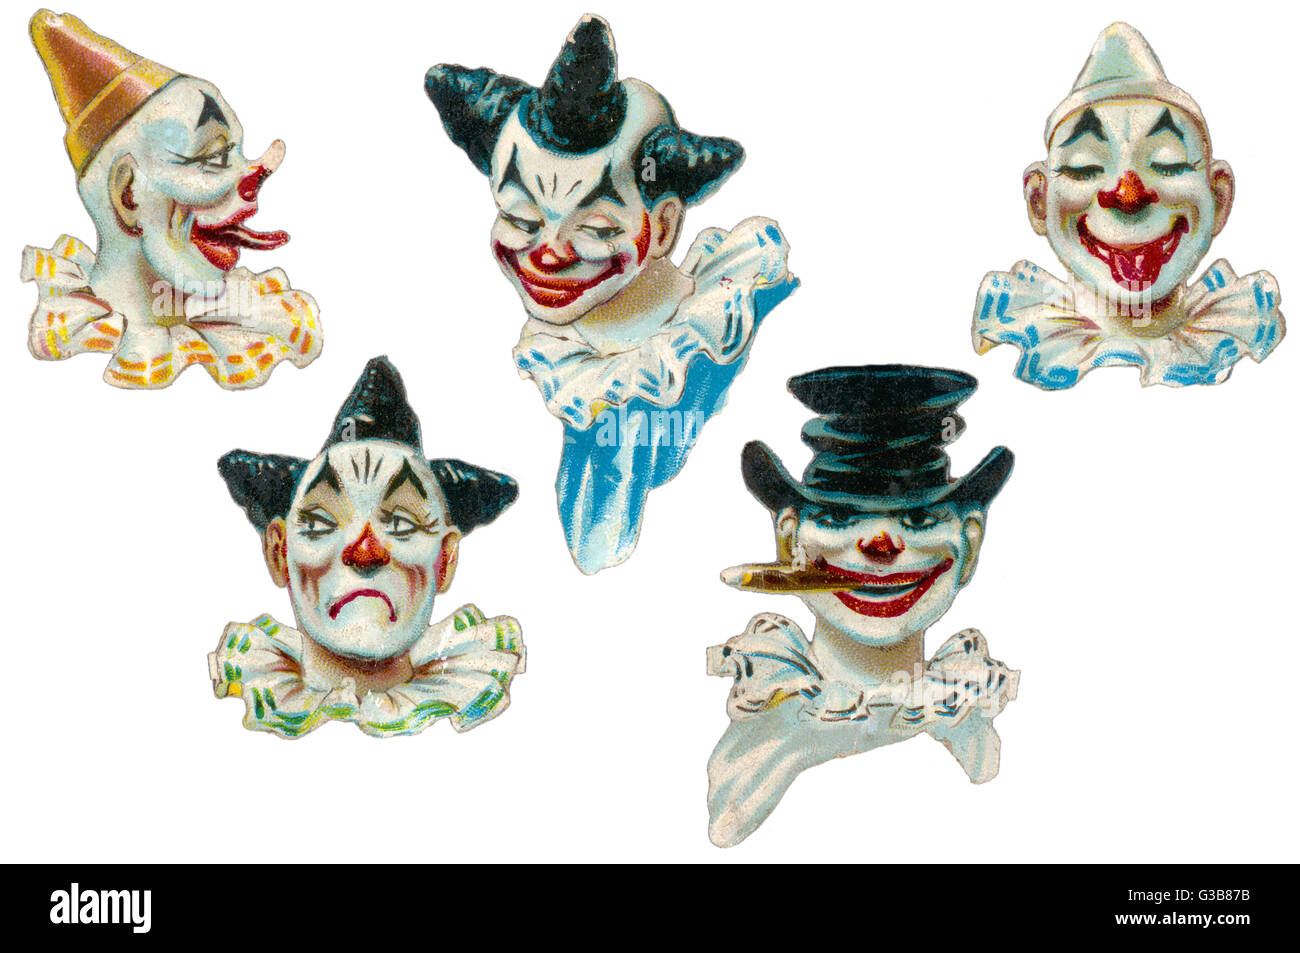 A selection of clown's faces  with various expressions.        Date: late 19th century - Stock Image